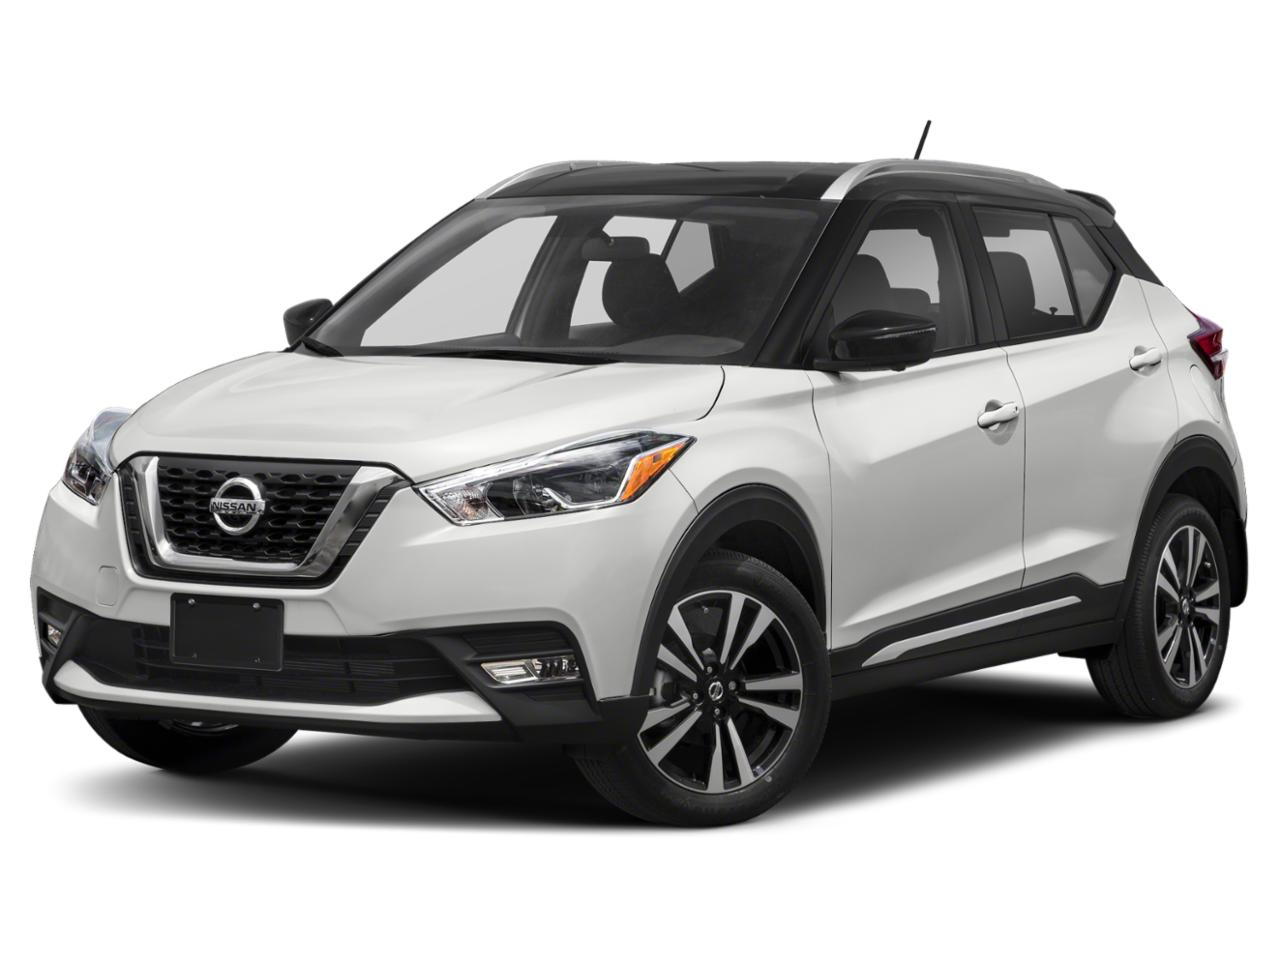 2020 Nissan Kicks Vehicle Photo in Owensboro, KY 42301